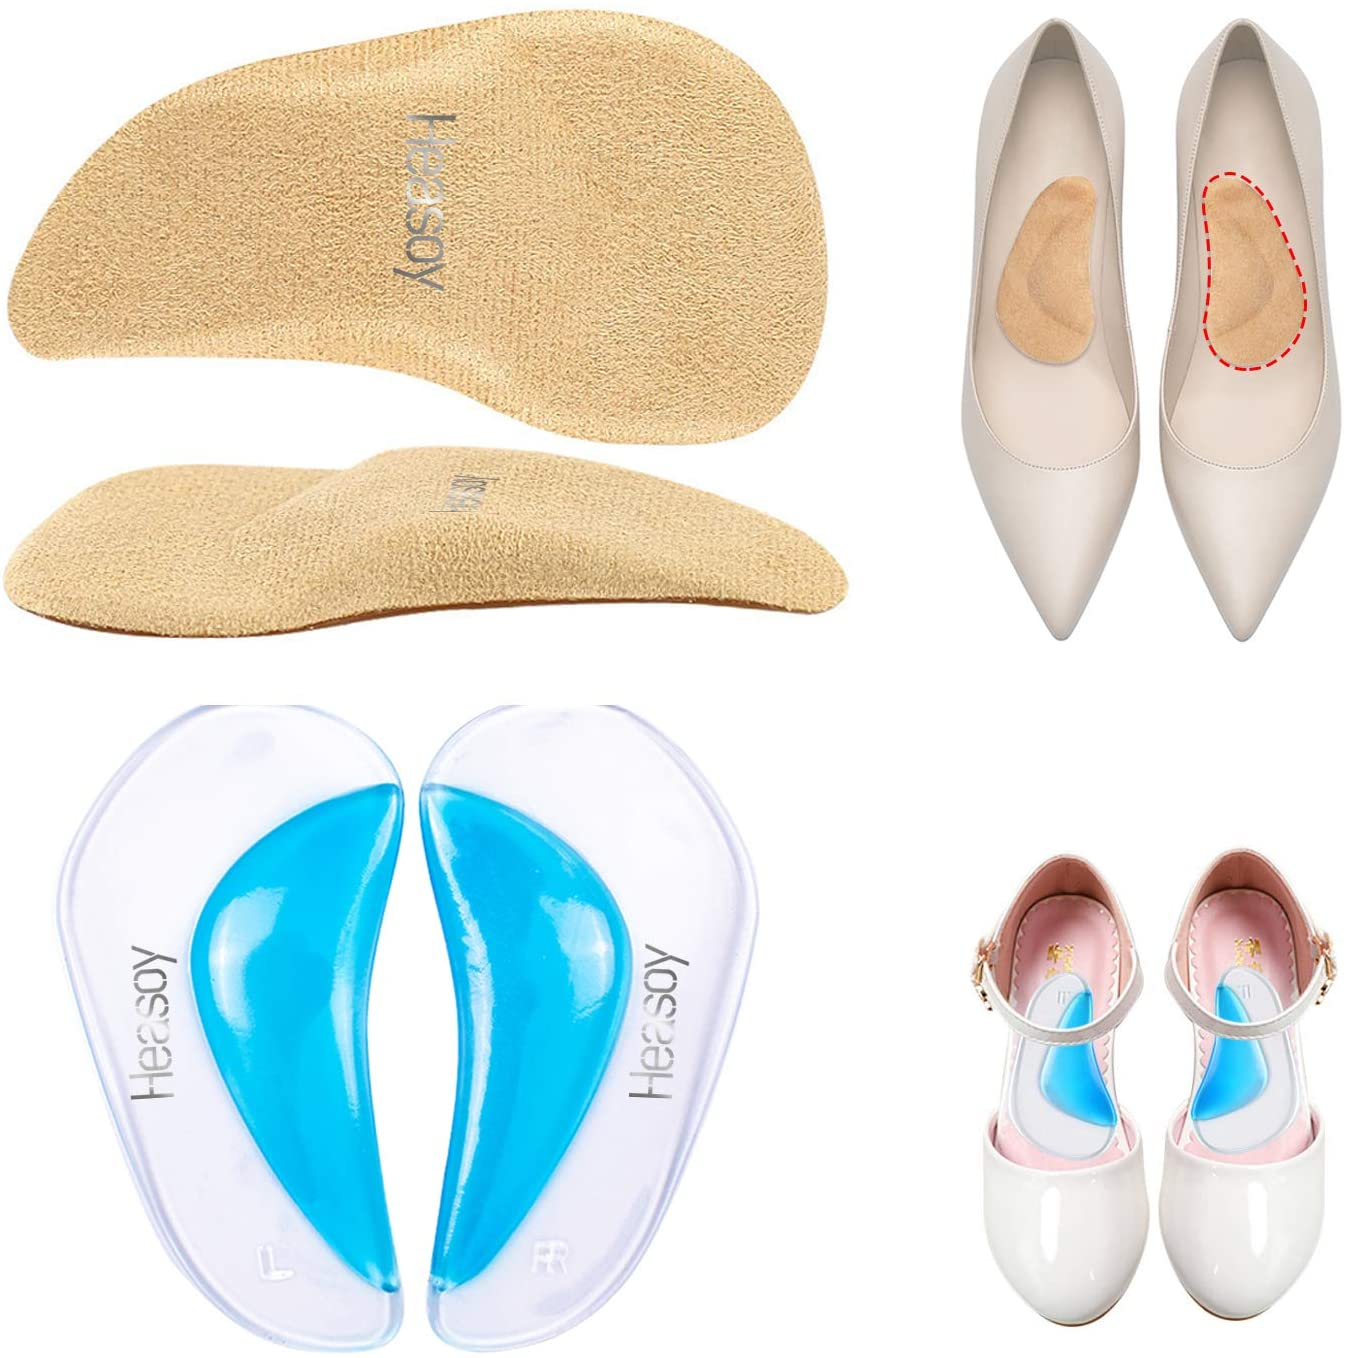 Heasoy Arch Support Orthotic Insoles, Arch Orthotic Insoles, Silicone Arch Correction Insoles for Foot Pain Relief, Plantar Fasciitis, Flat Feet, Foot Valgus, O/X-leg, Suitable for Men, Women and Kids